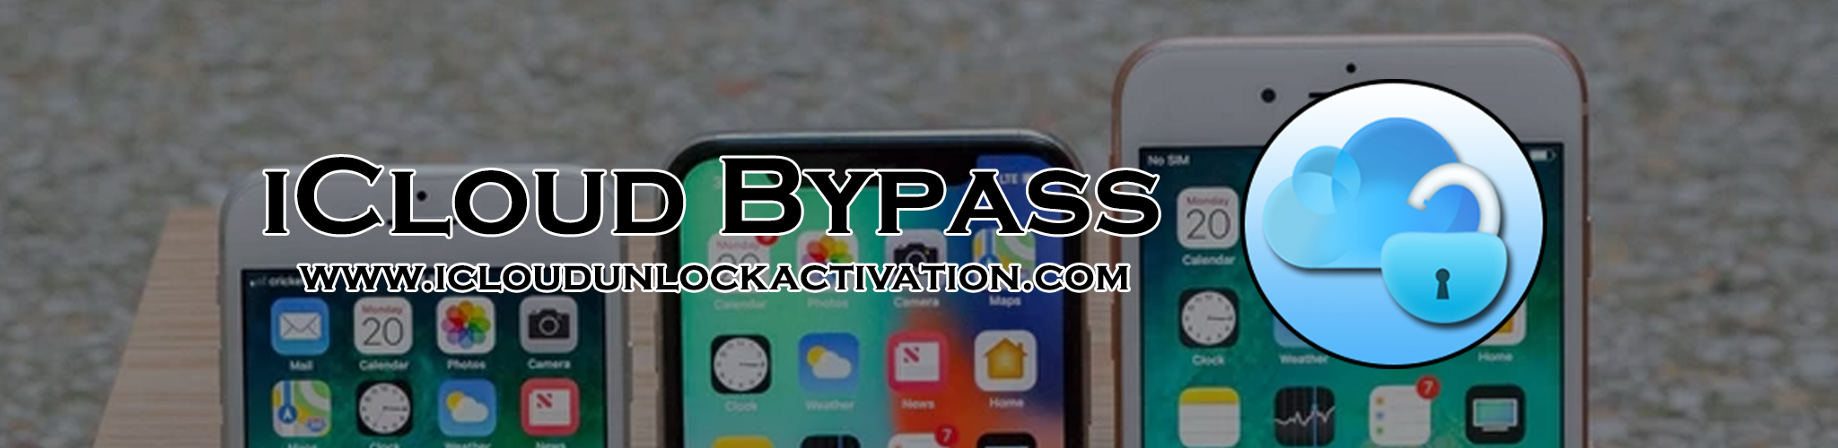 What is iCloud Bypass? - Thelma Royse - Medium